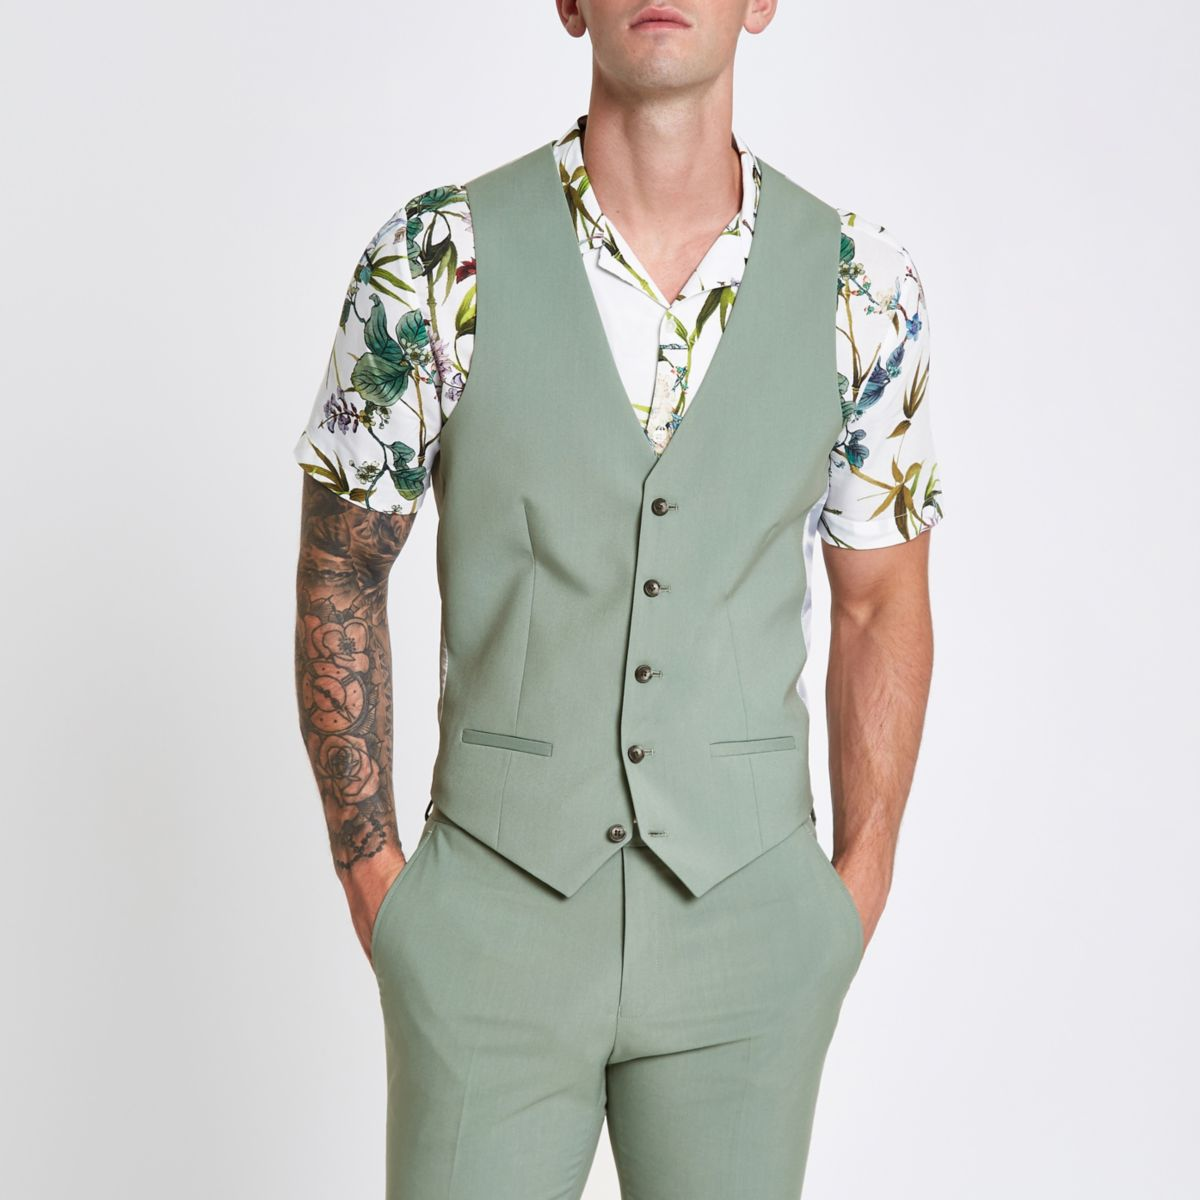 Mint green suit vest